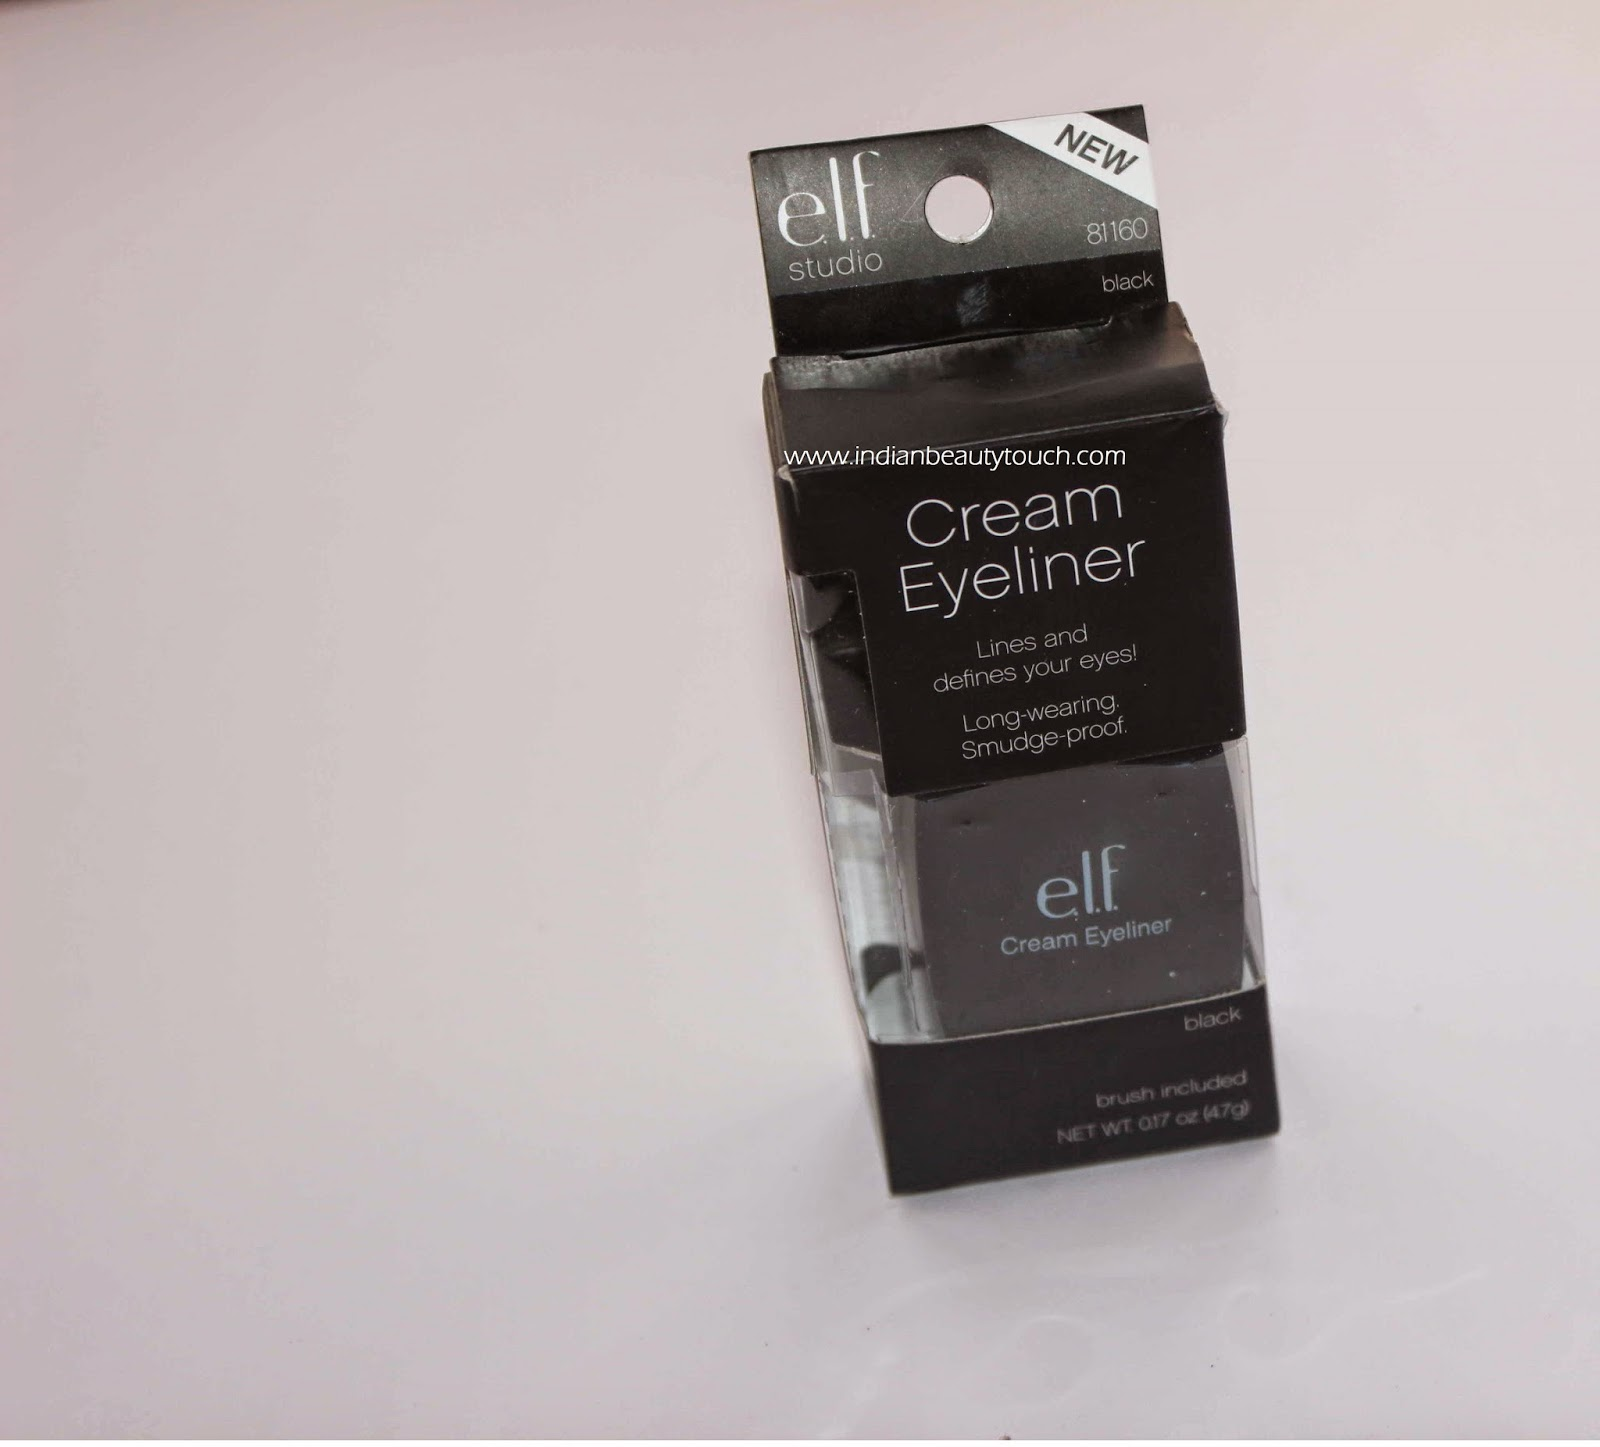 E.L.F. Cream Eyeliner in Black Review, Elf cosmetics, Elf eyeliner , Affordable Gel eyeliner , E.L.F. Cream Eyeliner in Black Review India